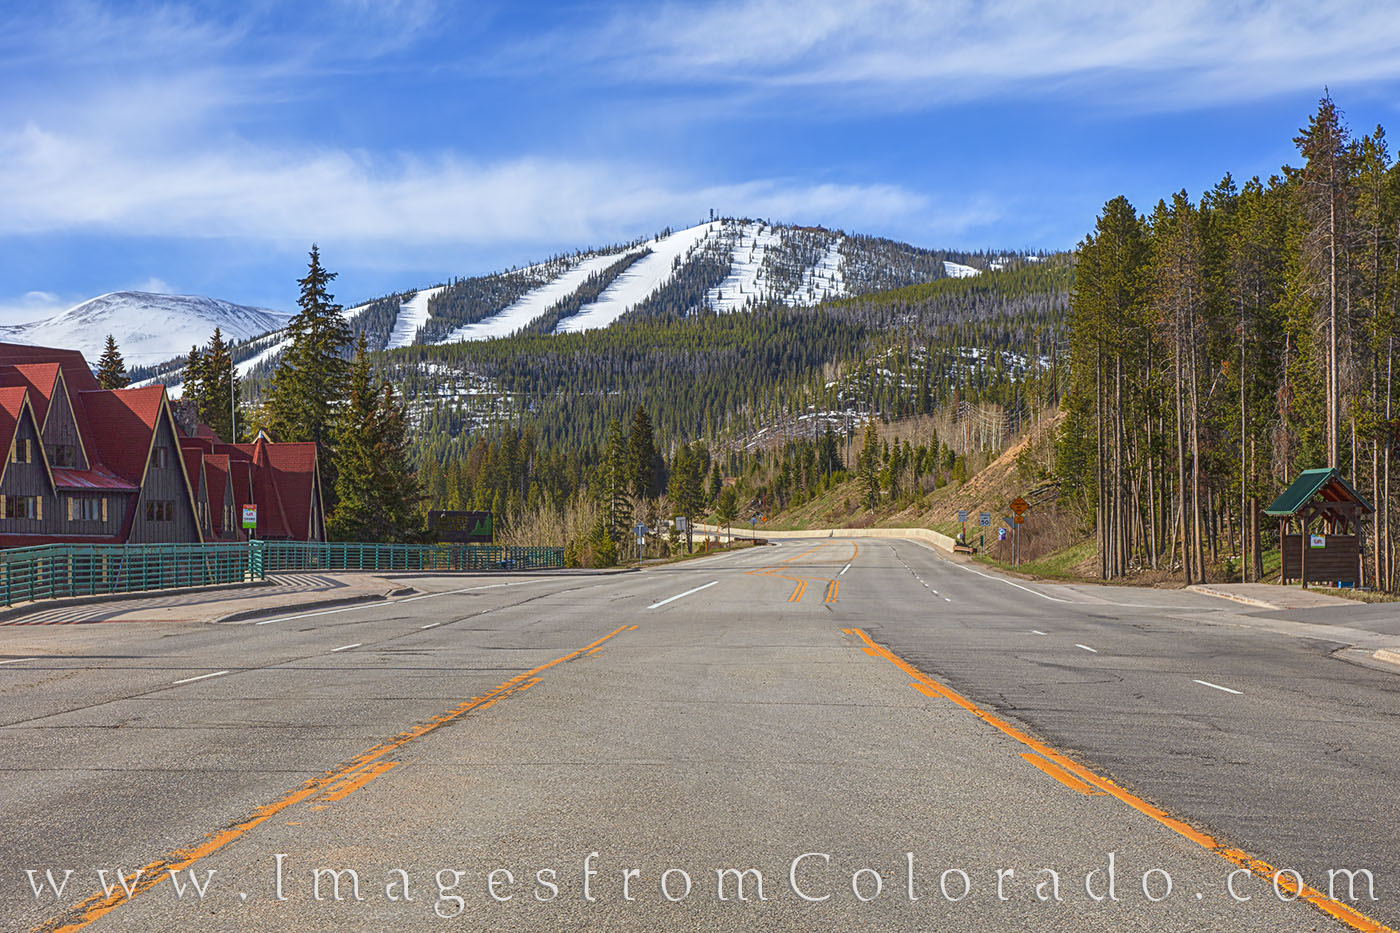 highway 40, grand county, winter park, ski runs, ski base, spring, snow, photo